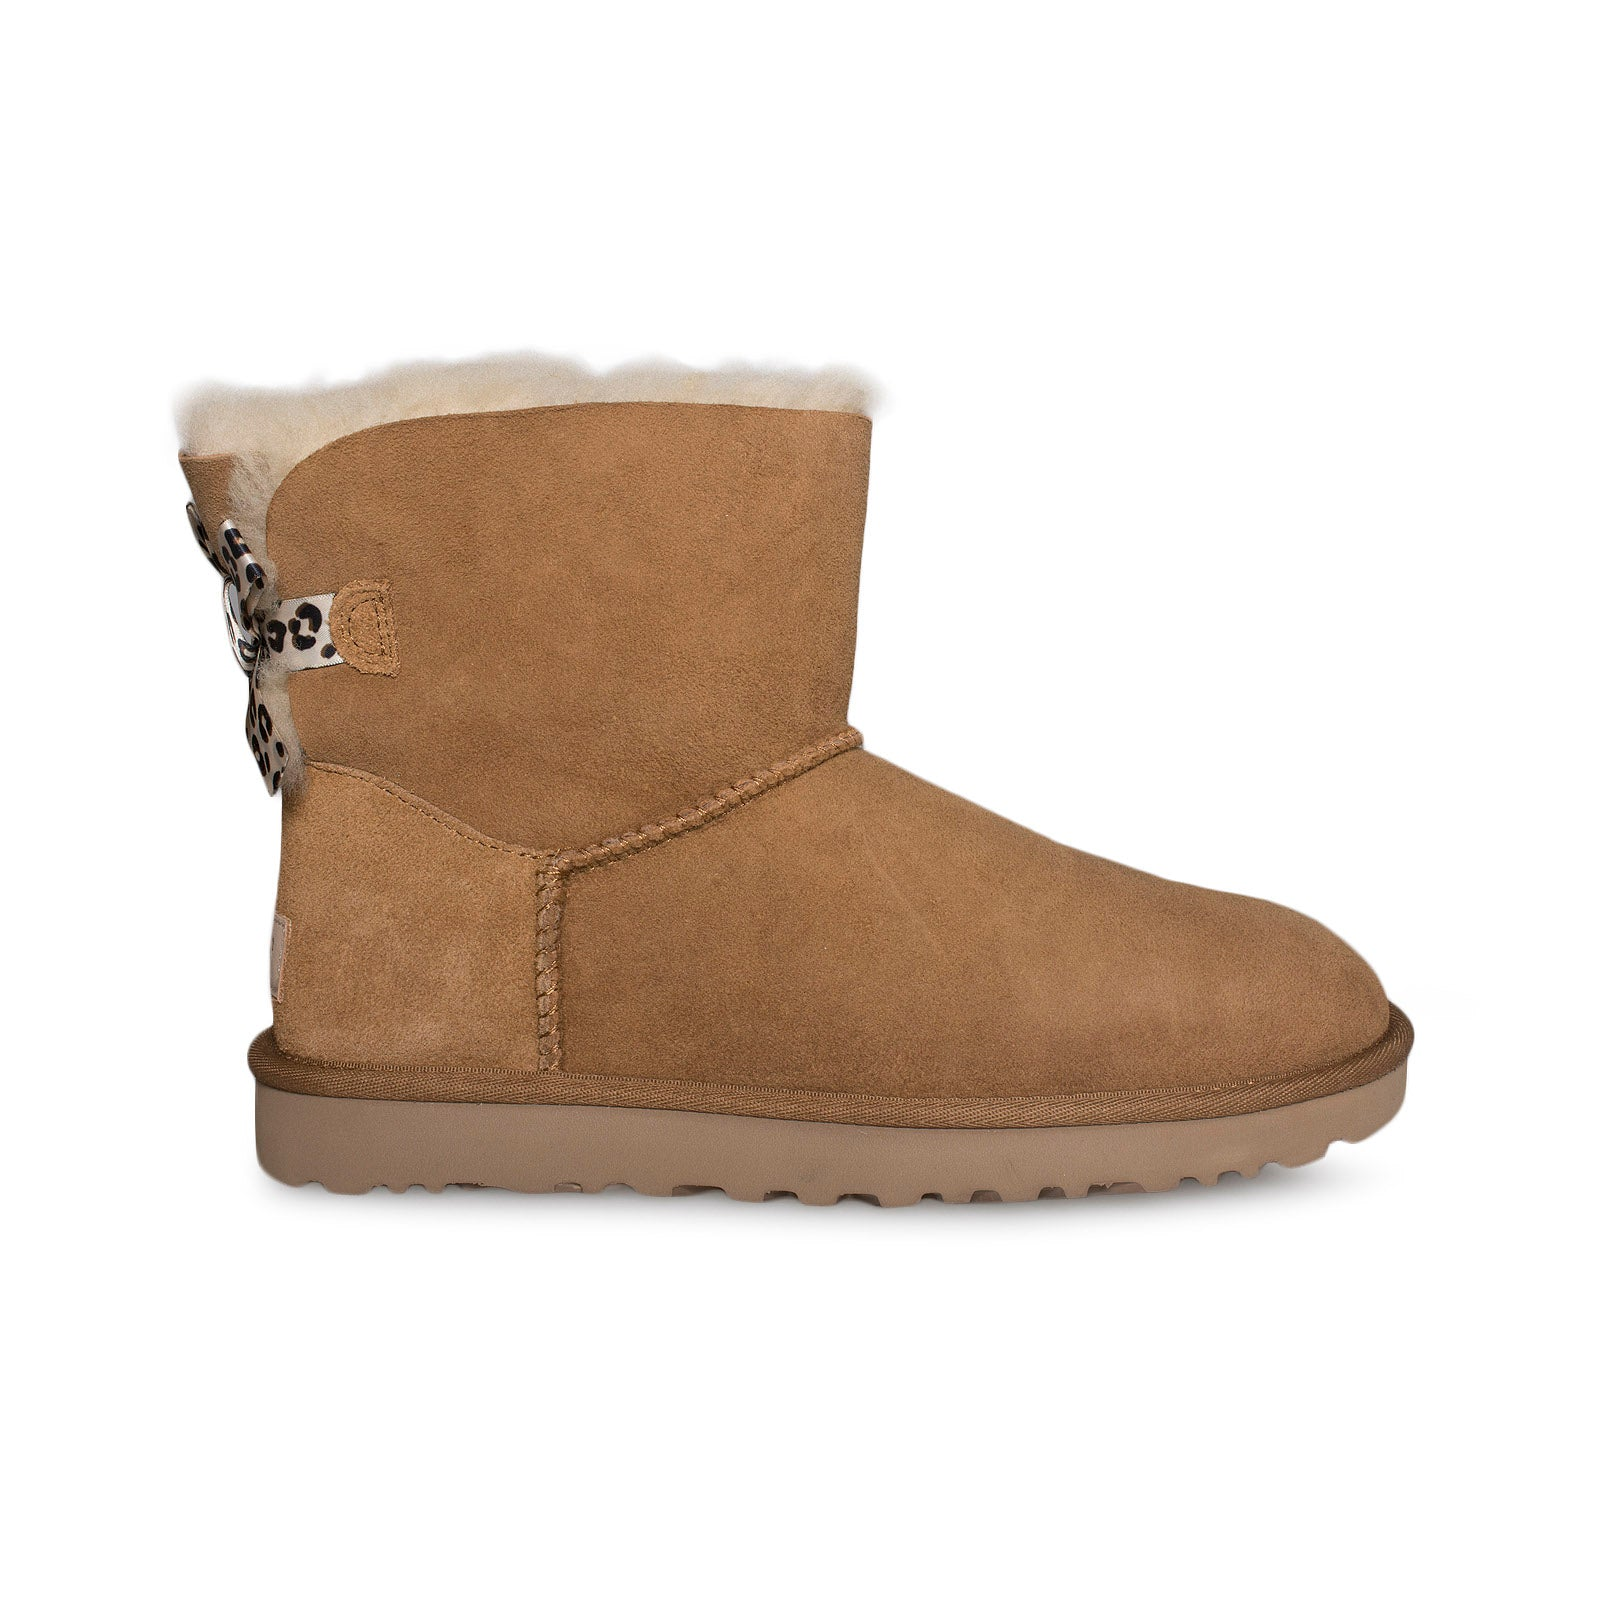 6cfcb333a2d UGG Mini Bailey Bow II Exotic Chestnut Boots - Women's